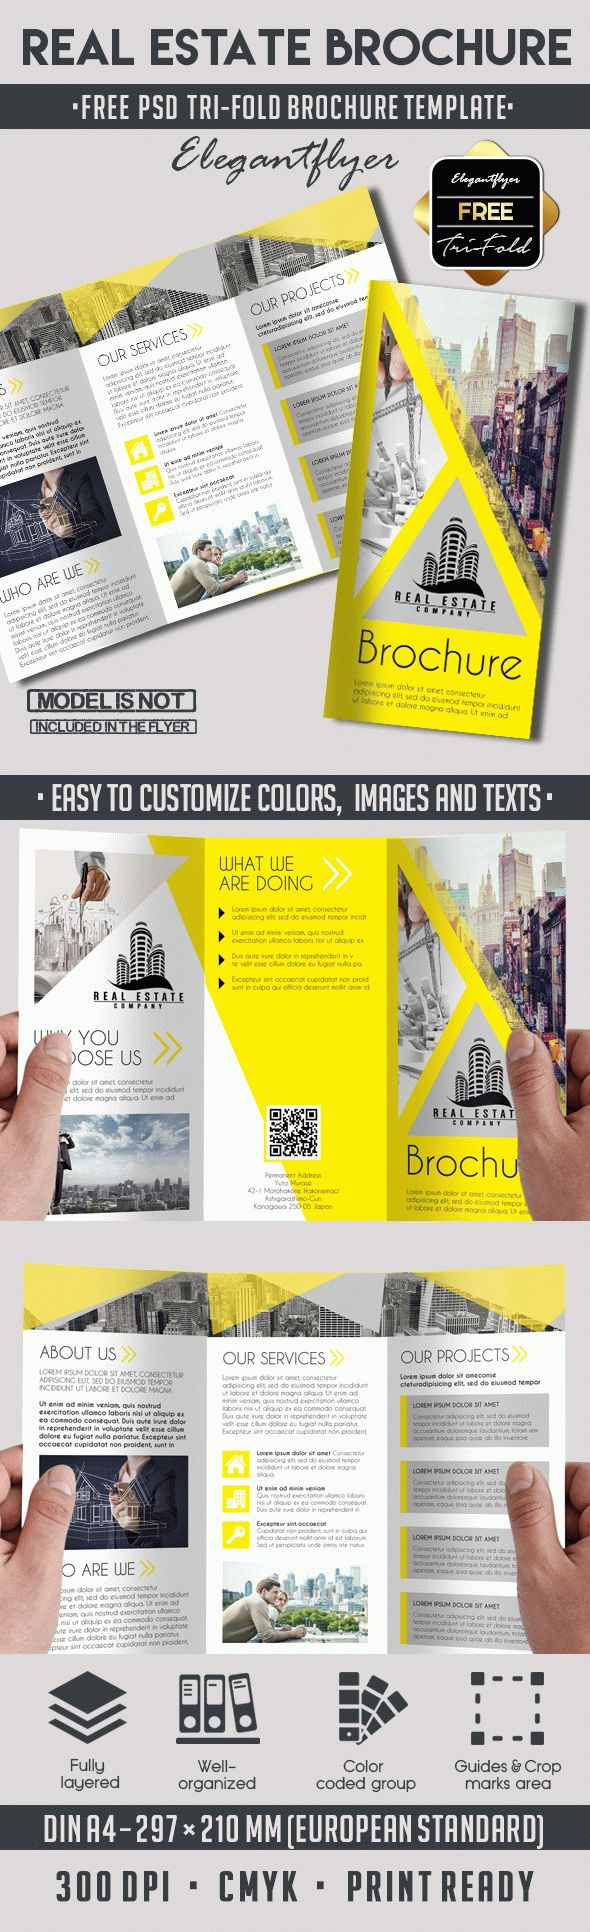 real estate brochure templates psd free download - real estate free tri fold psd brochure template by